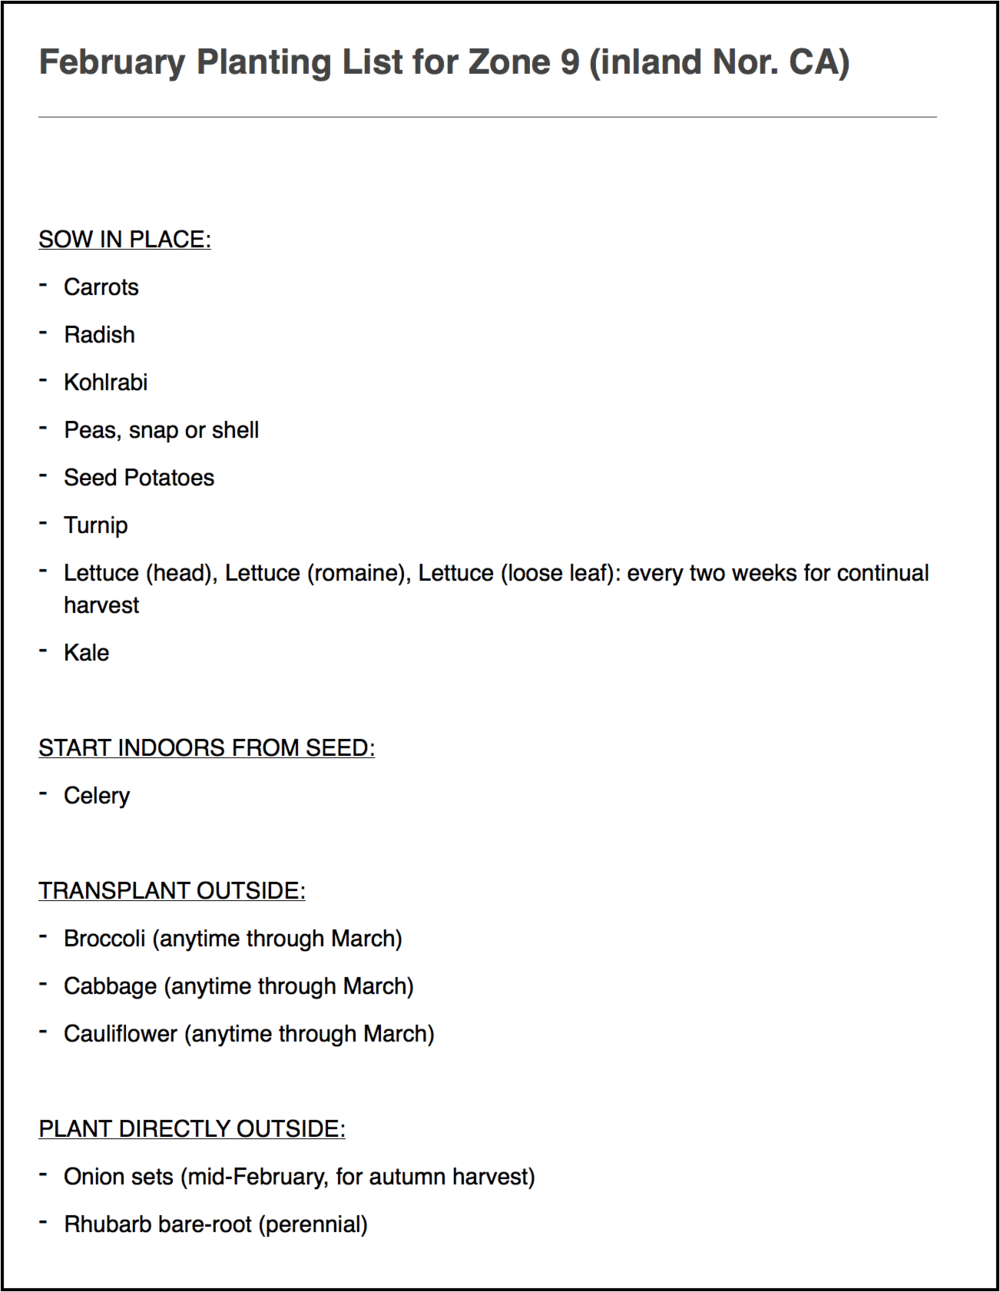 Planing List Image.png